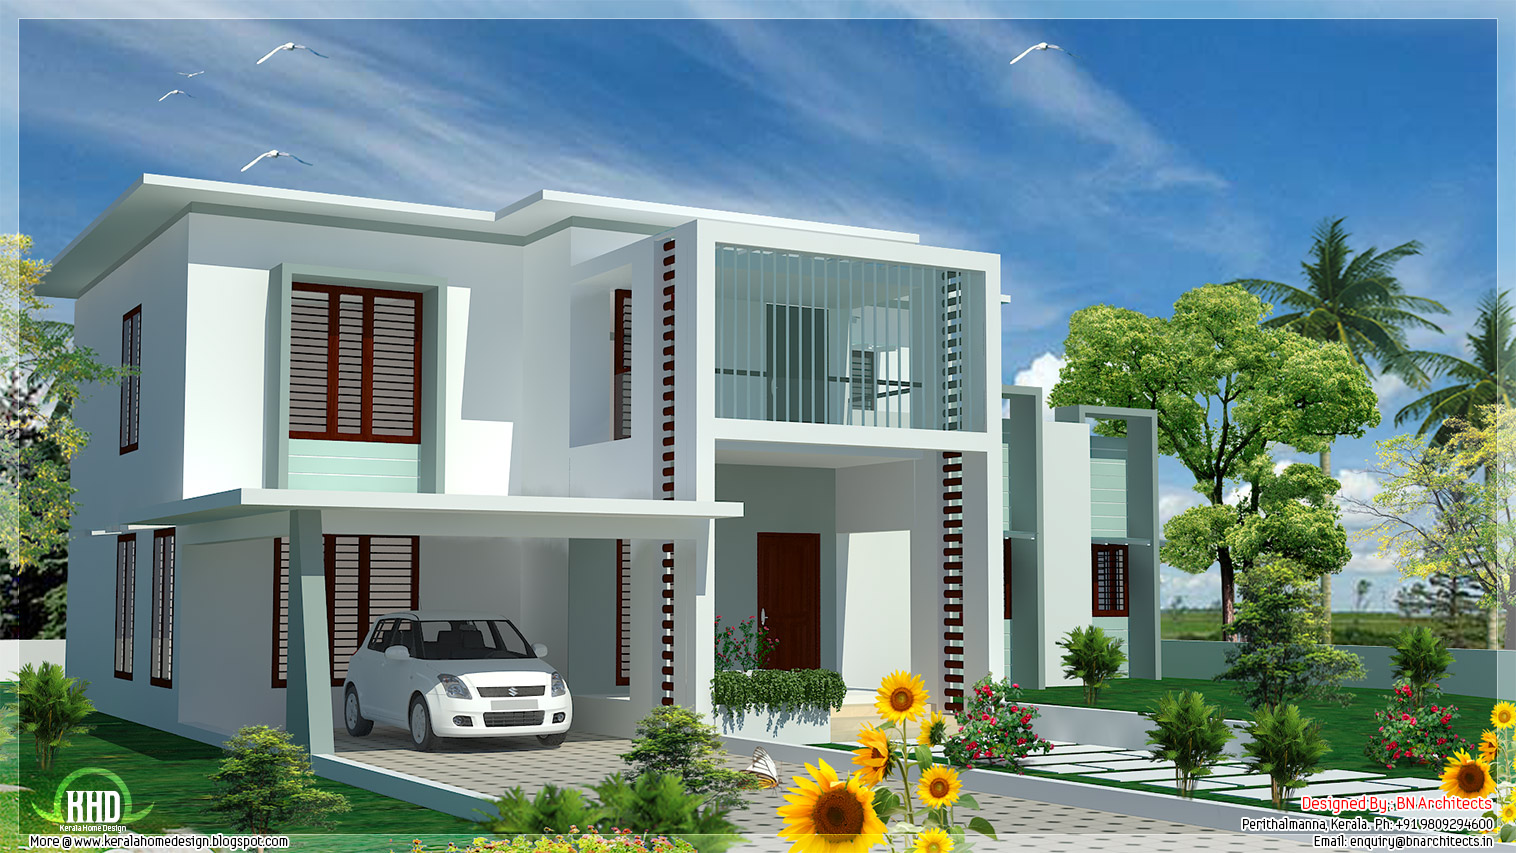 4 bedroom modern flat roof house kerala home design and for 4 bedroom modern house plans